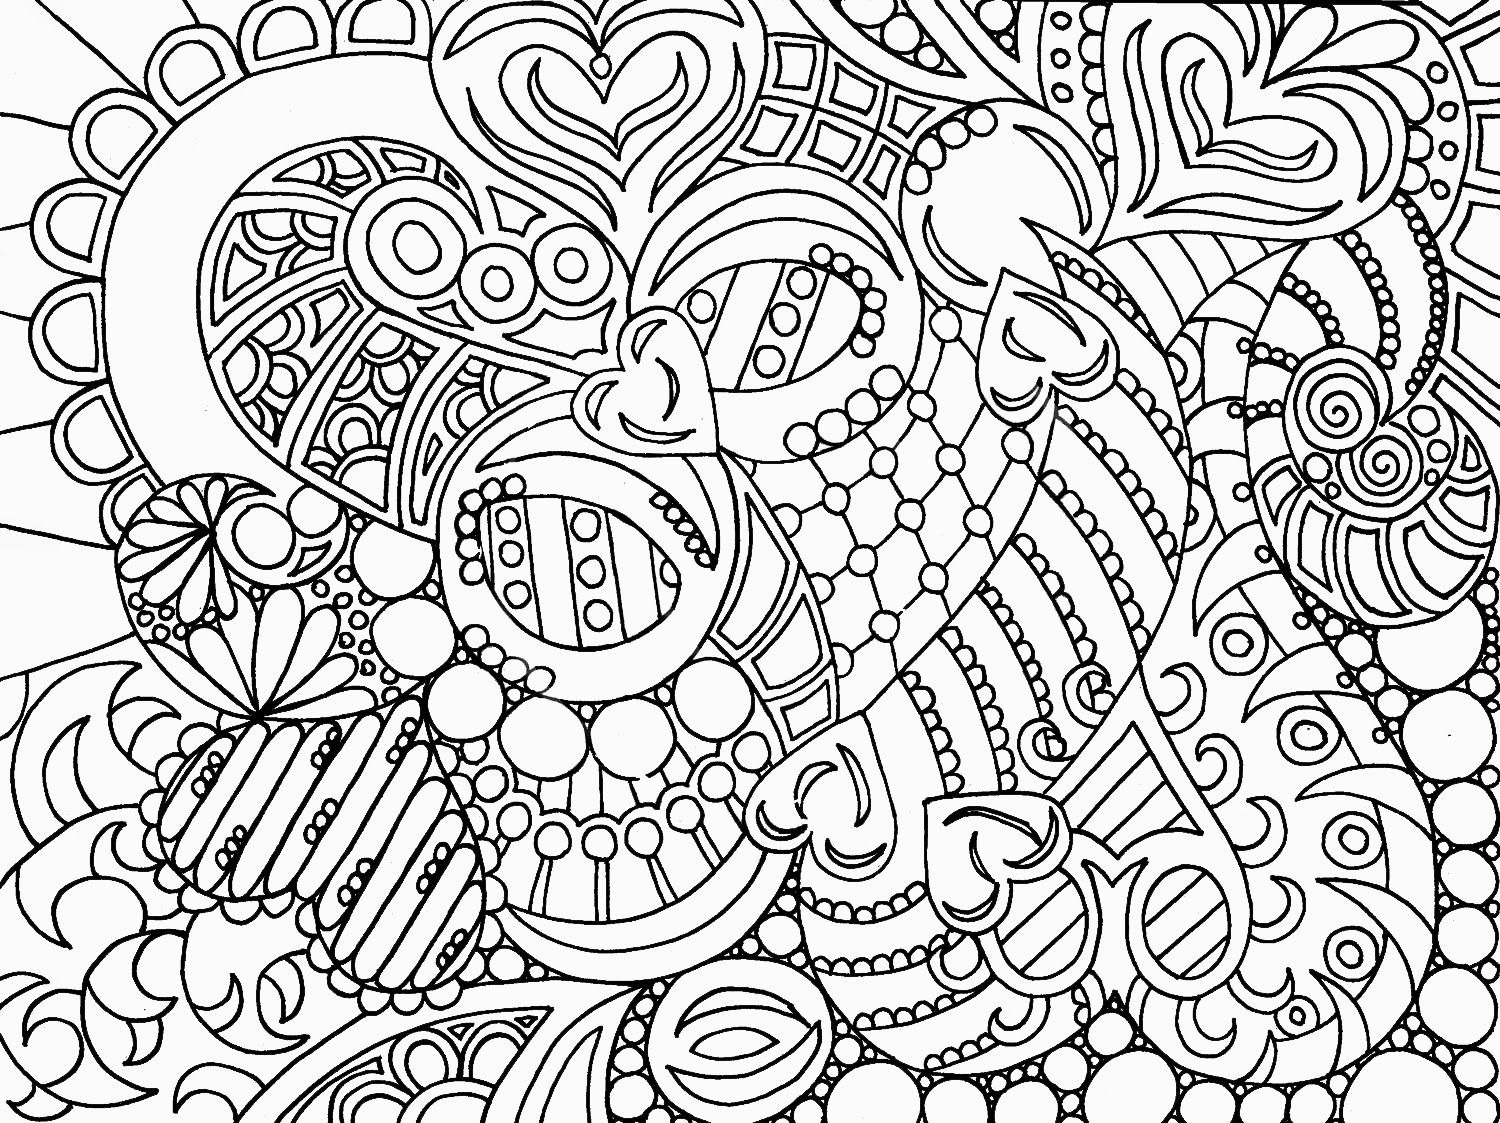 abstract coloring pages You can get Abstract Art coloring Pages